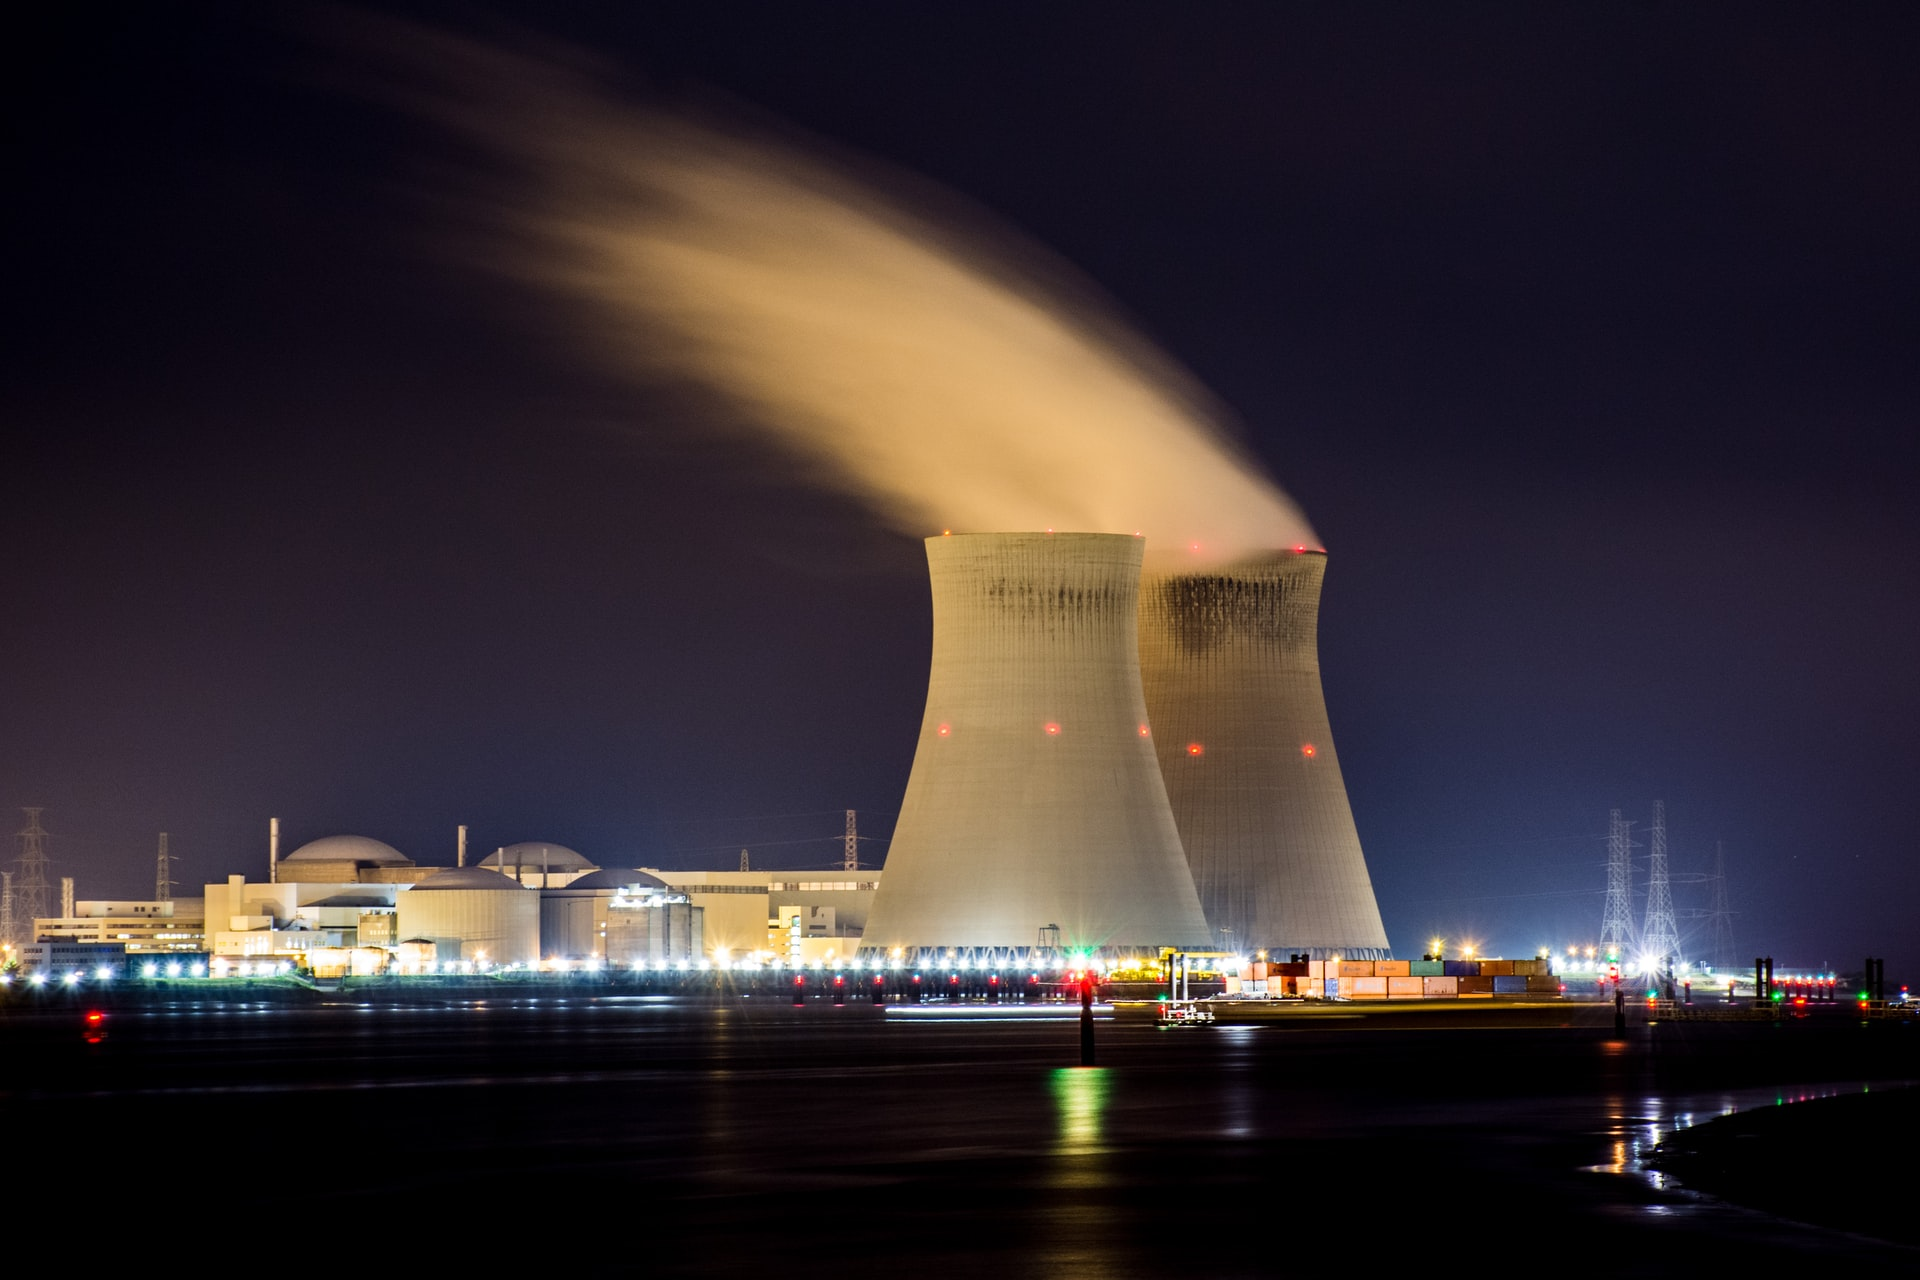 Energy Bill in Limbo as Midwest State Braces for Nuclear Closure